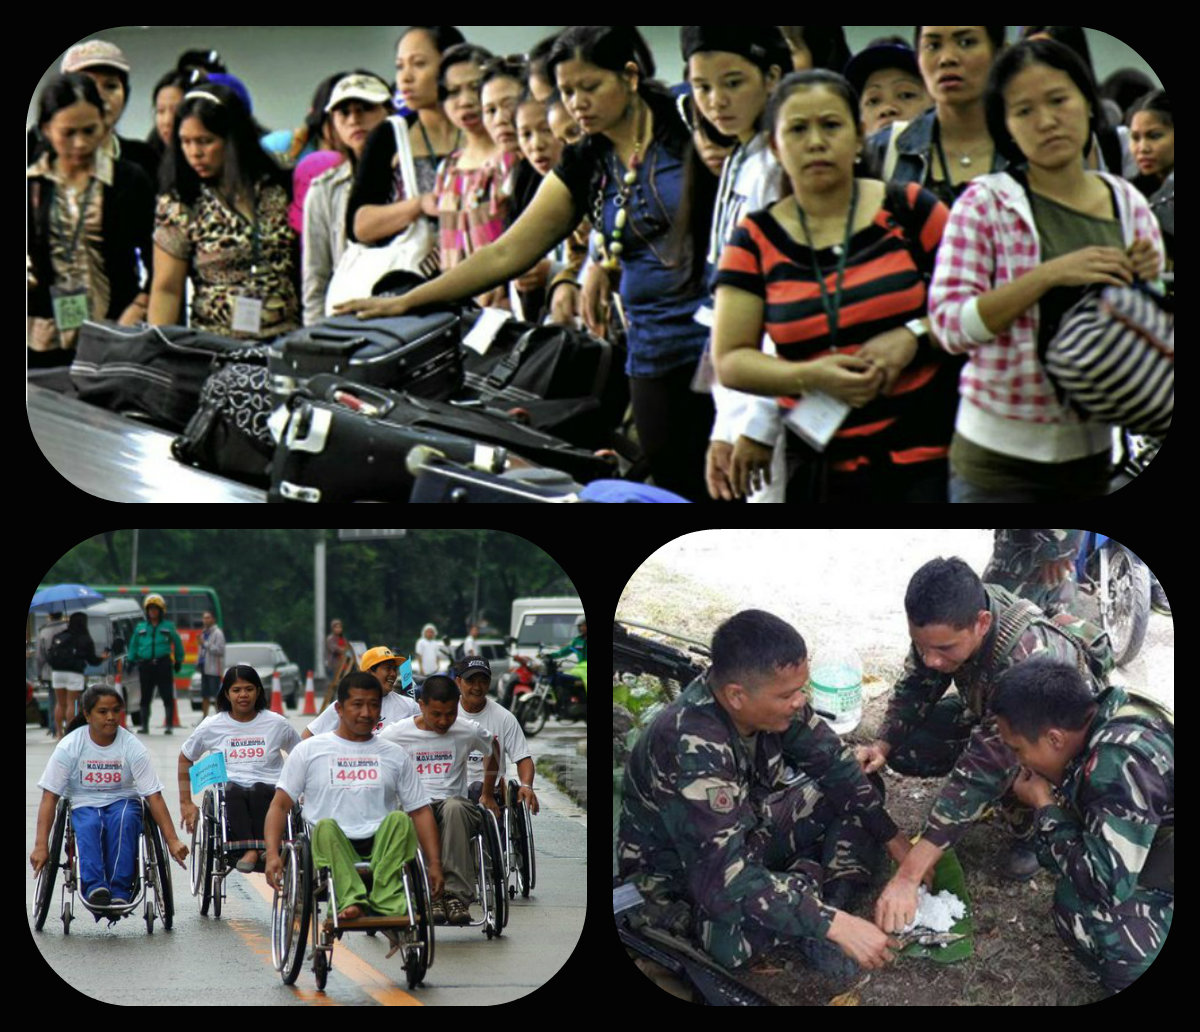 social injustice in the philippines 5 recent stories to read on social injustice in the philippines, about 90 percent of the estimated 94,000 inmates in custody are awaiting or undergoing trial.